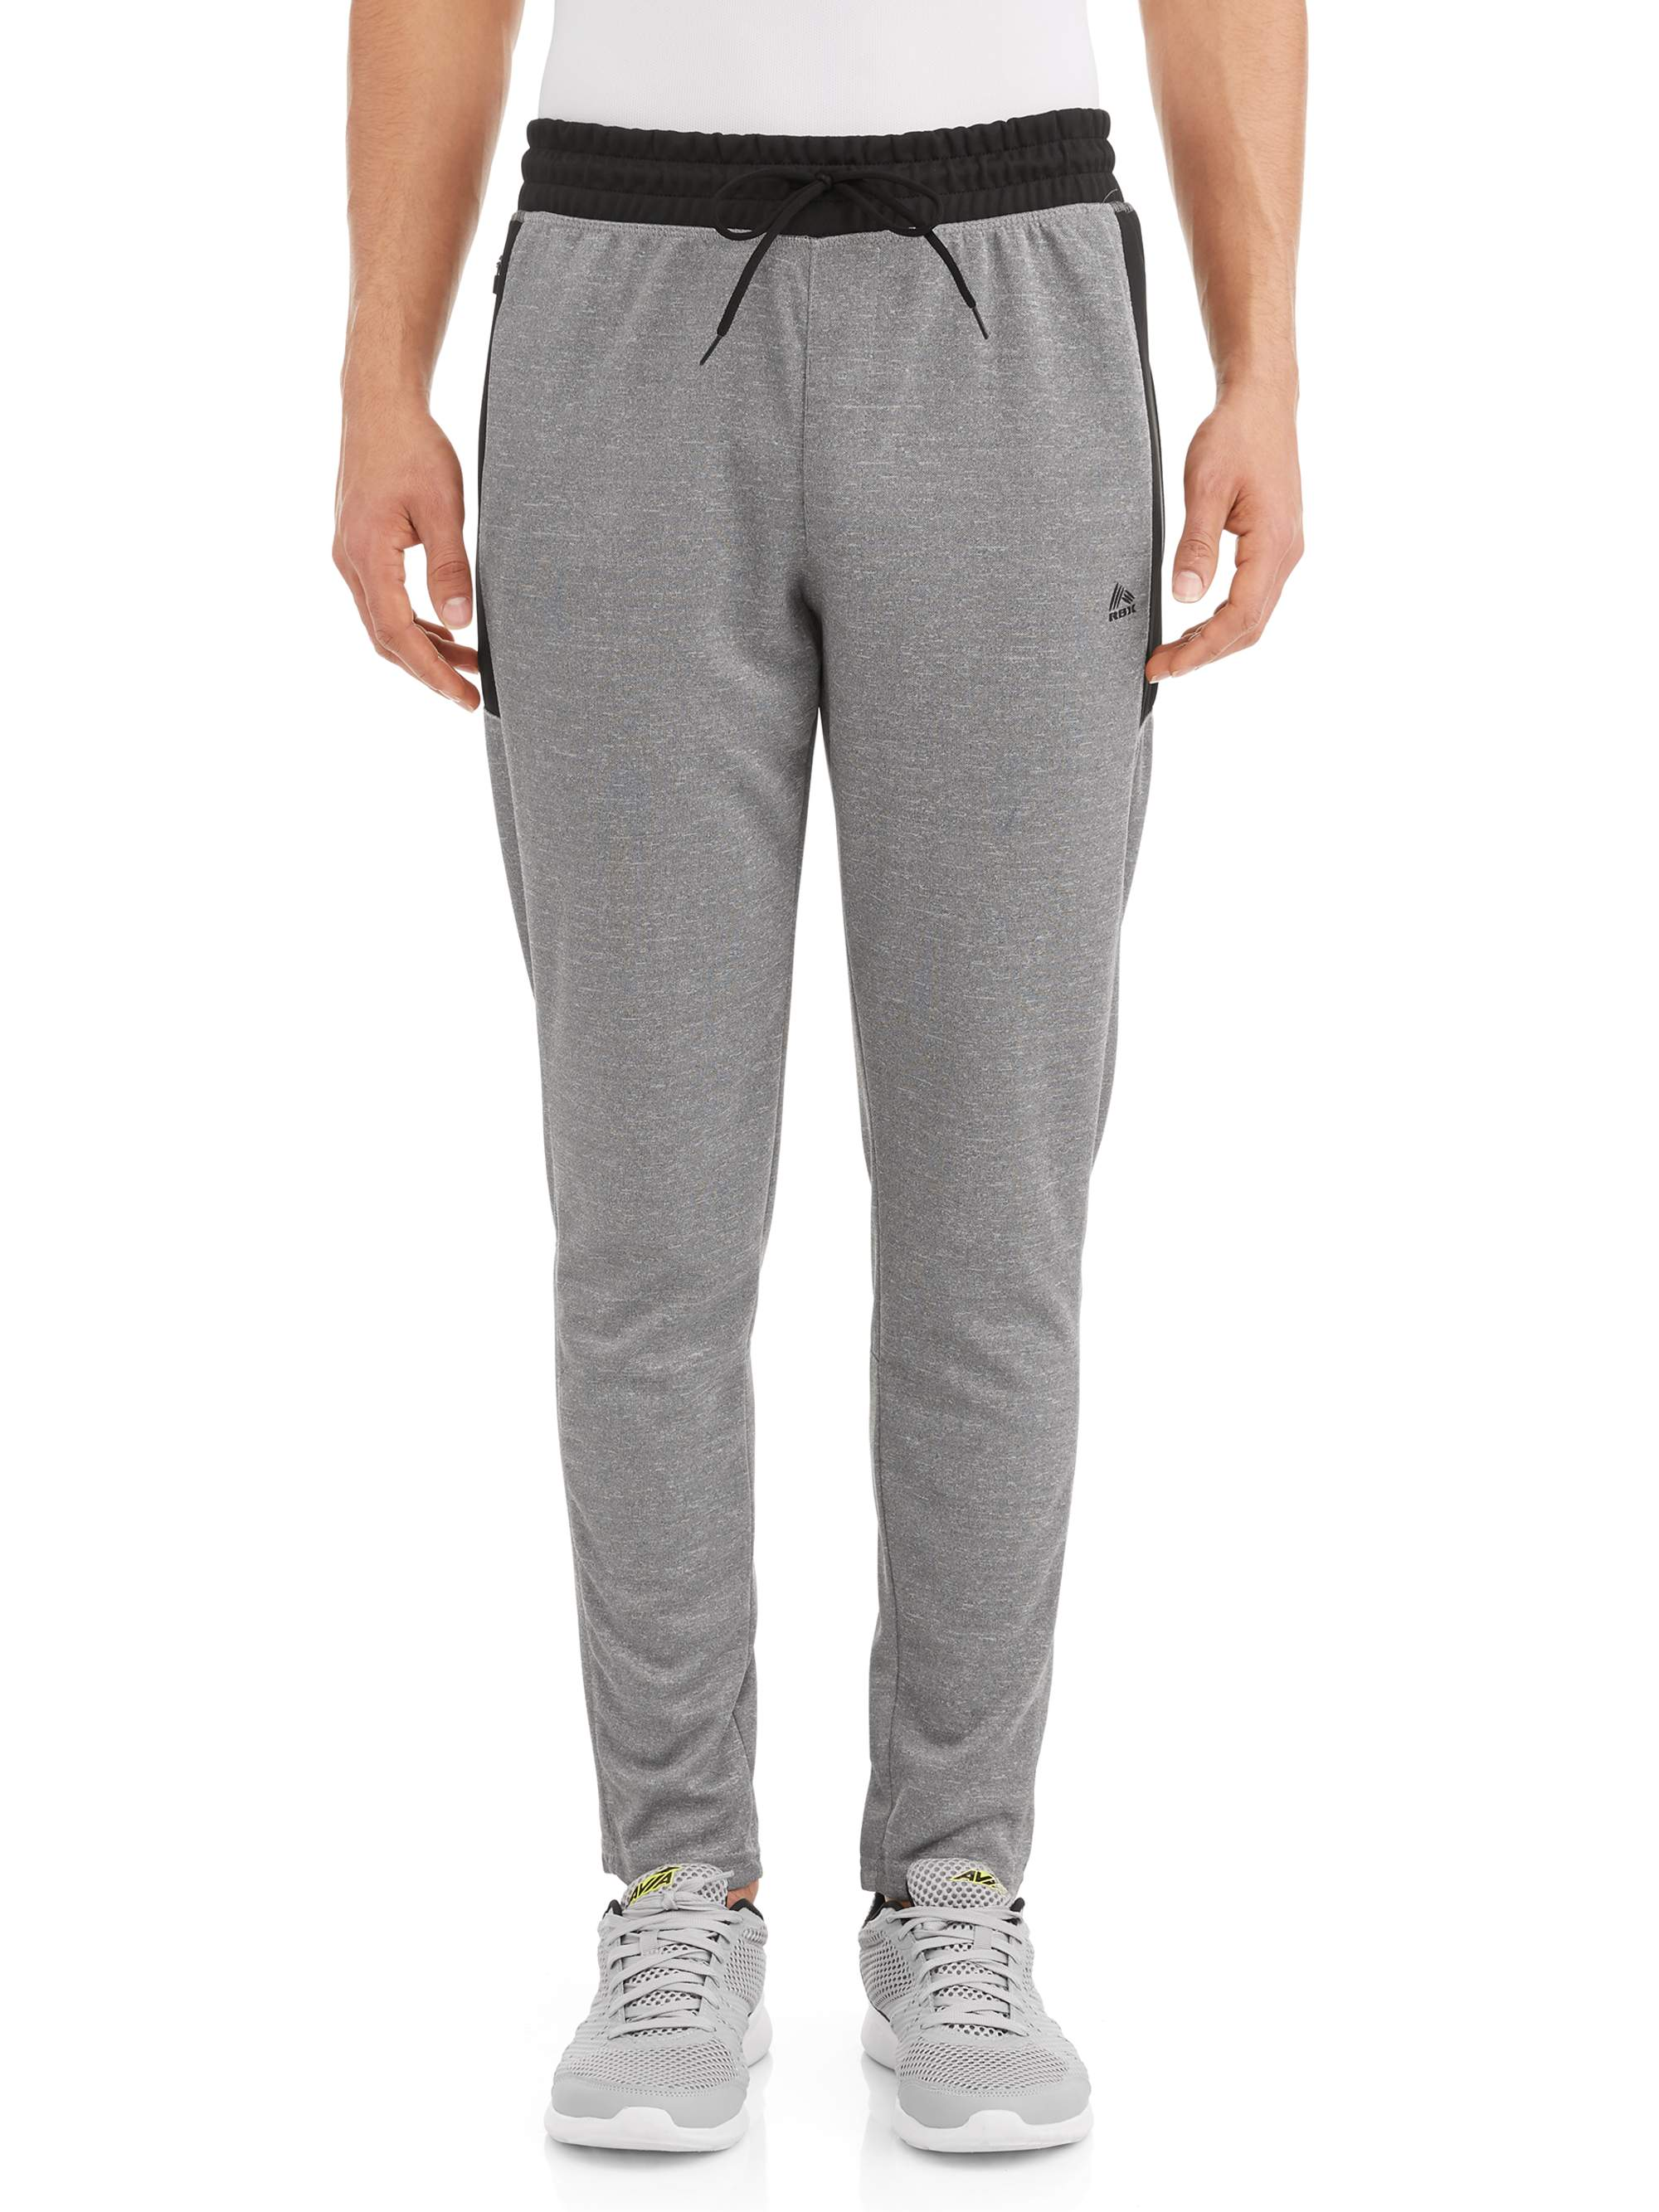 Men's Poly Interlock Tapered Pant with Bonded Zipper